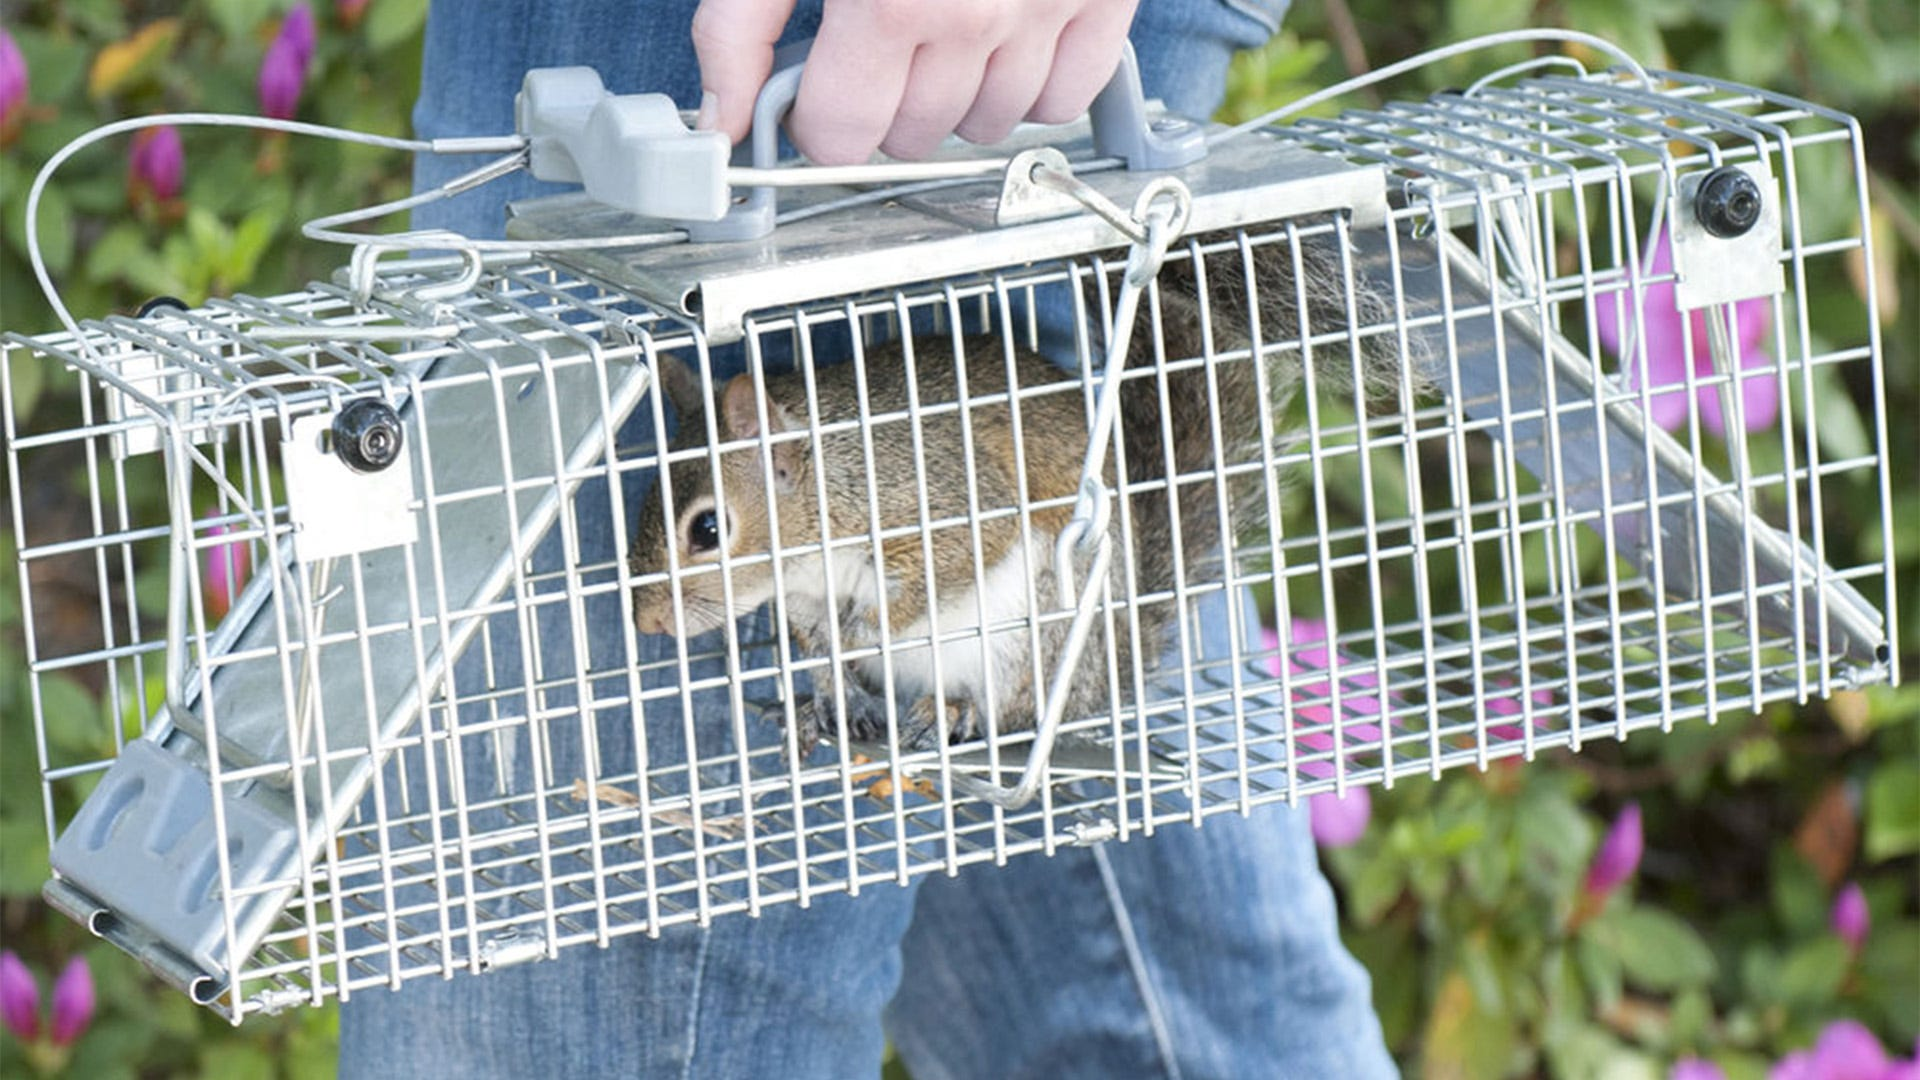 How to Make a Trap for Animals: Why Building Your Own Trap Is Not Effective